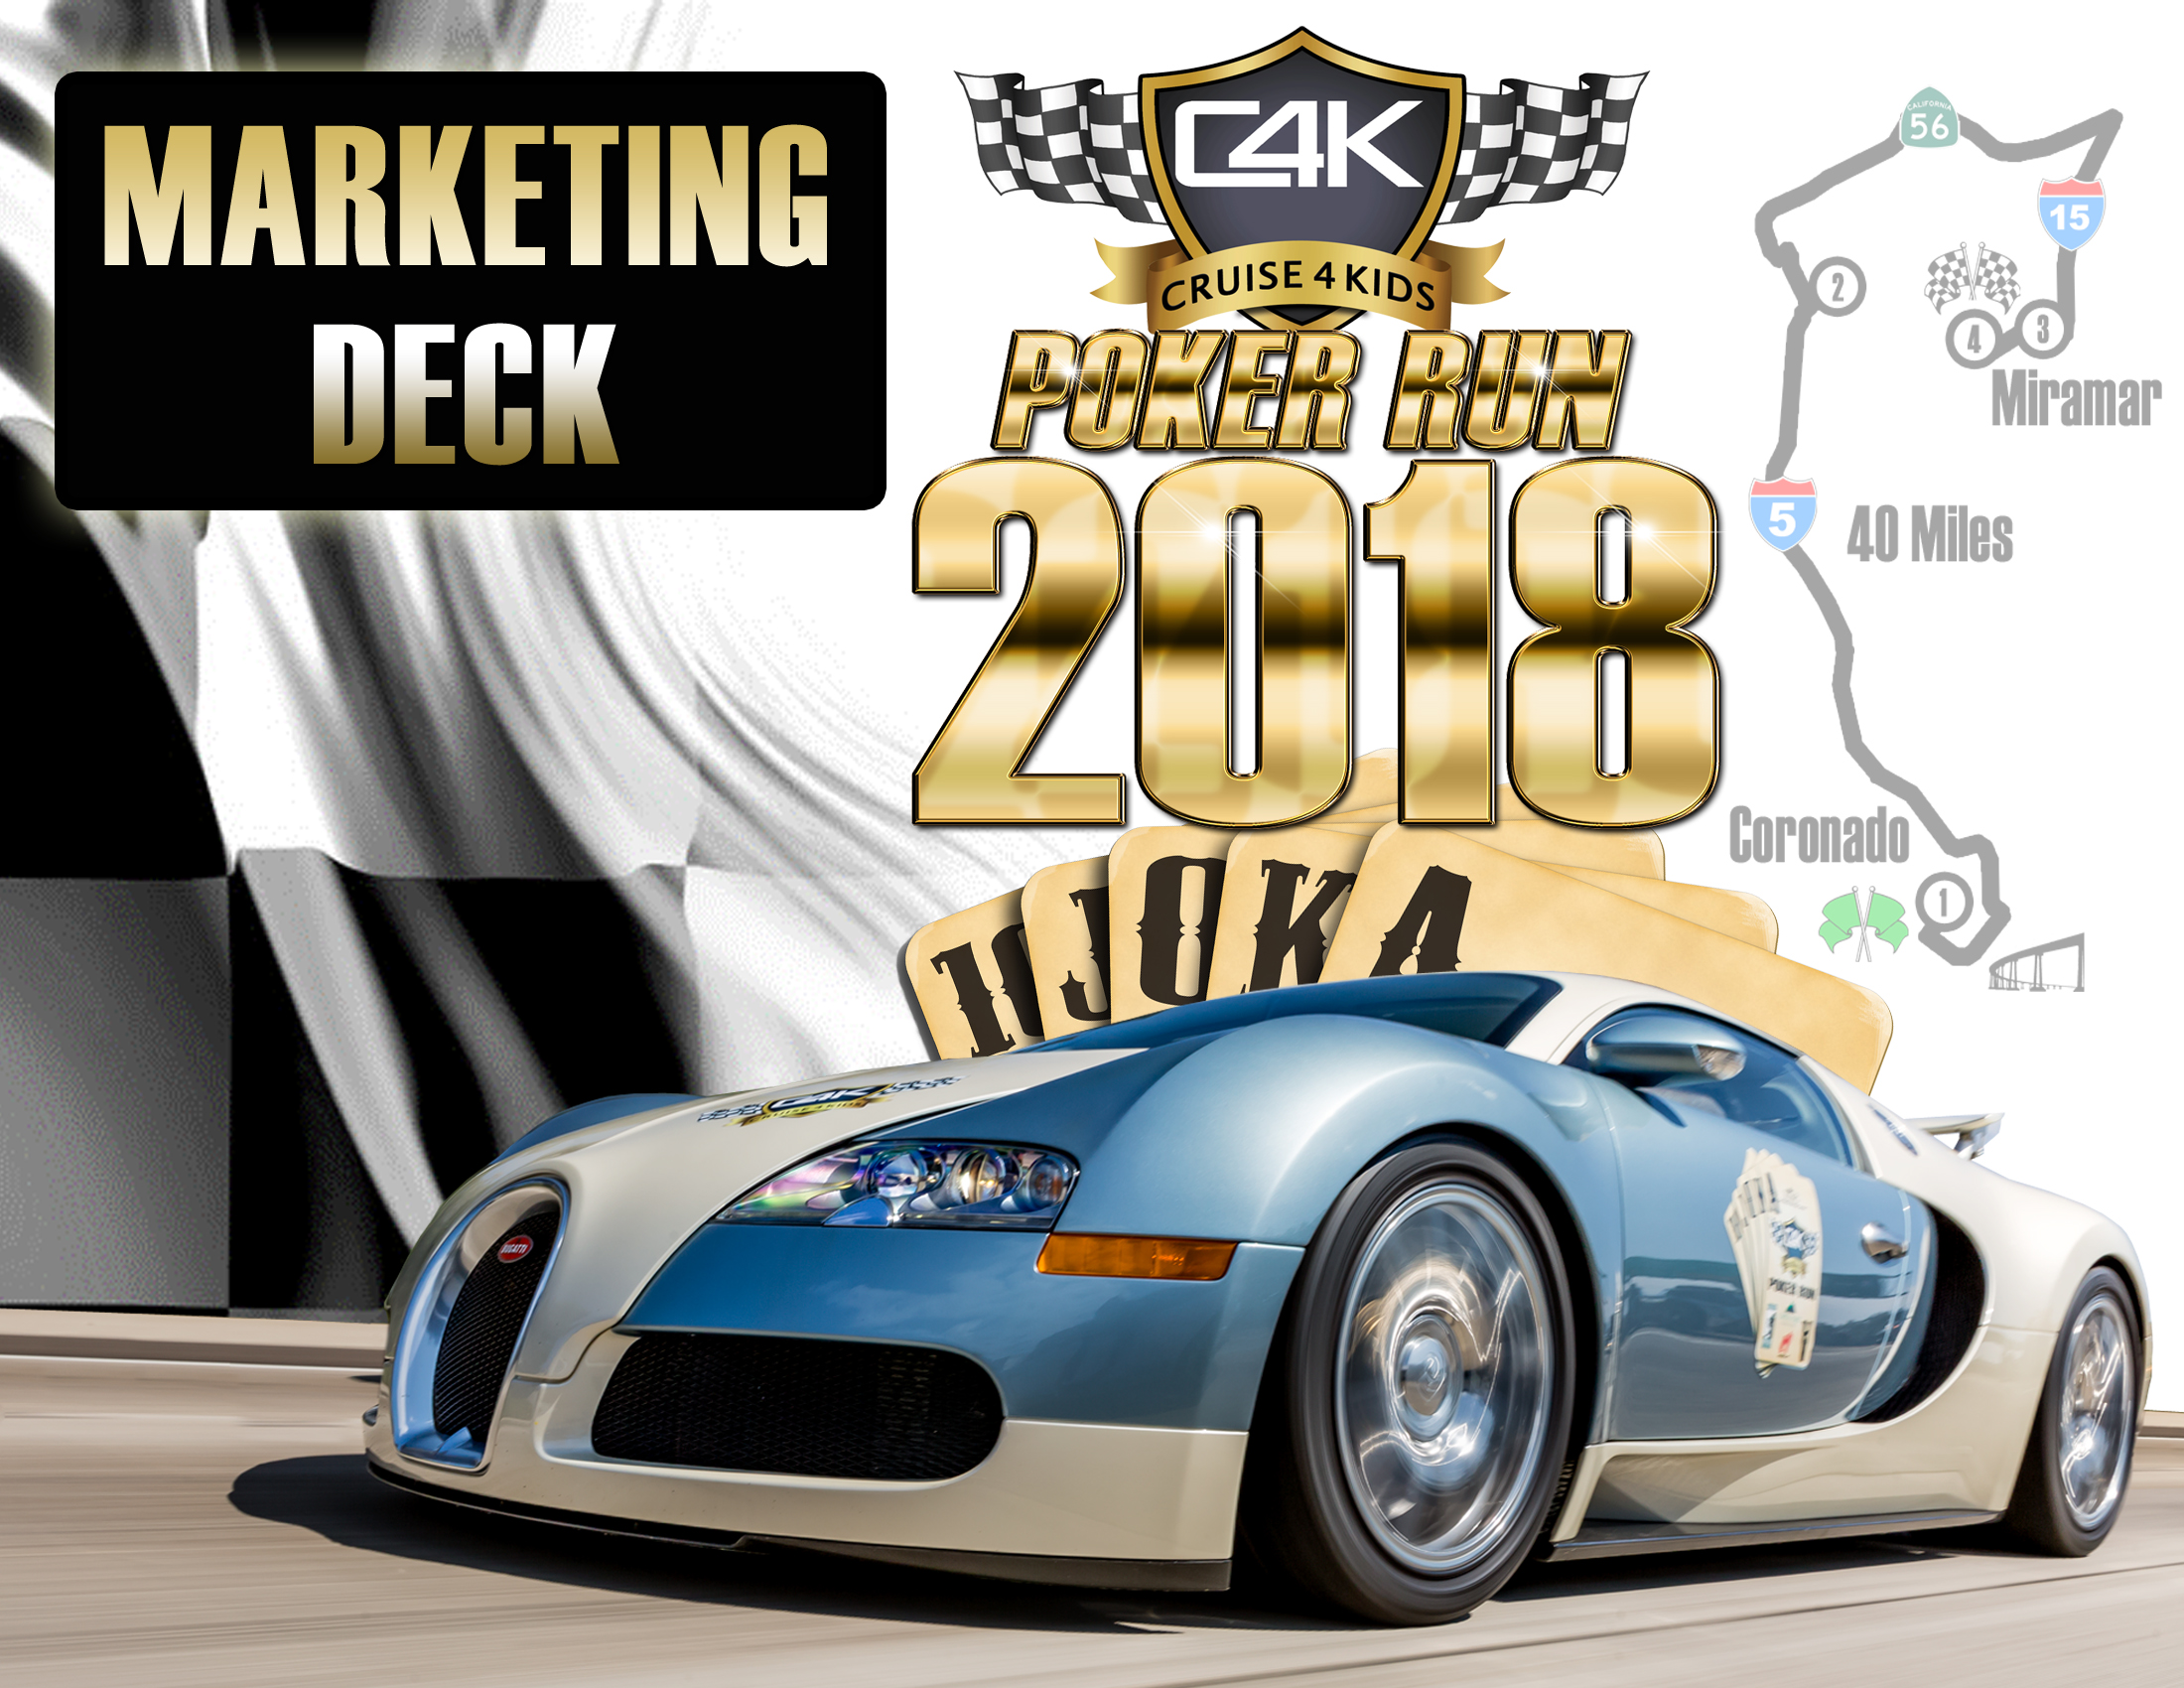 CLICK ON IMAGE TO DOWNLOAD MARKETING DECK